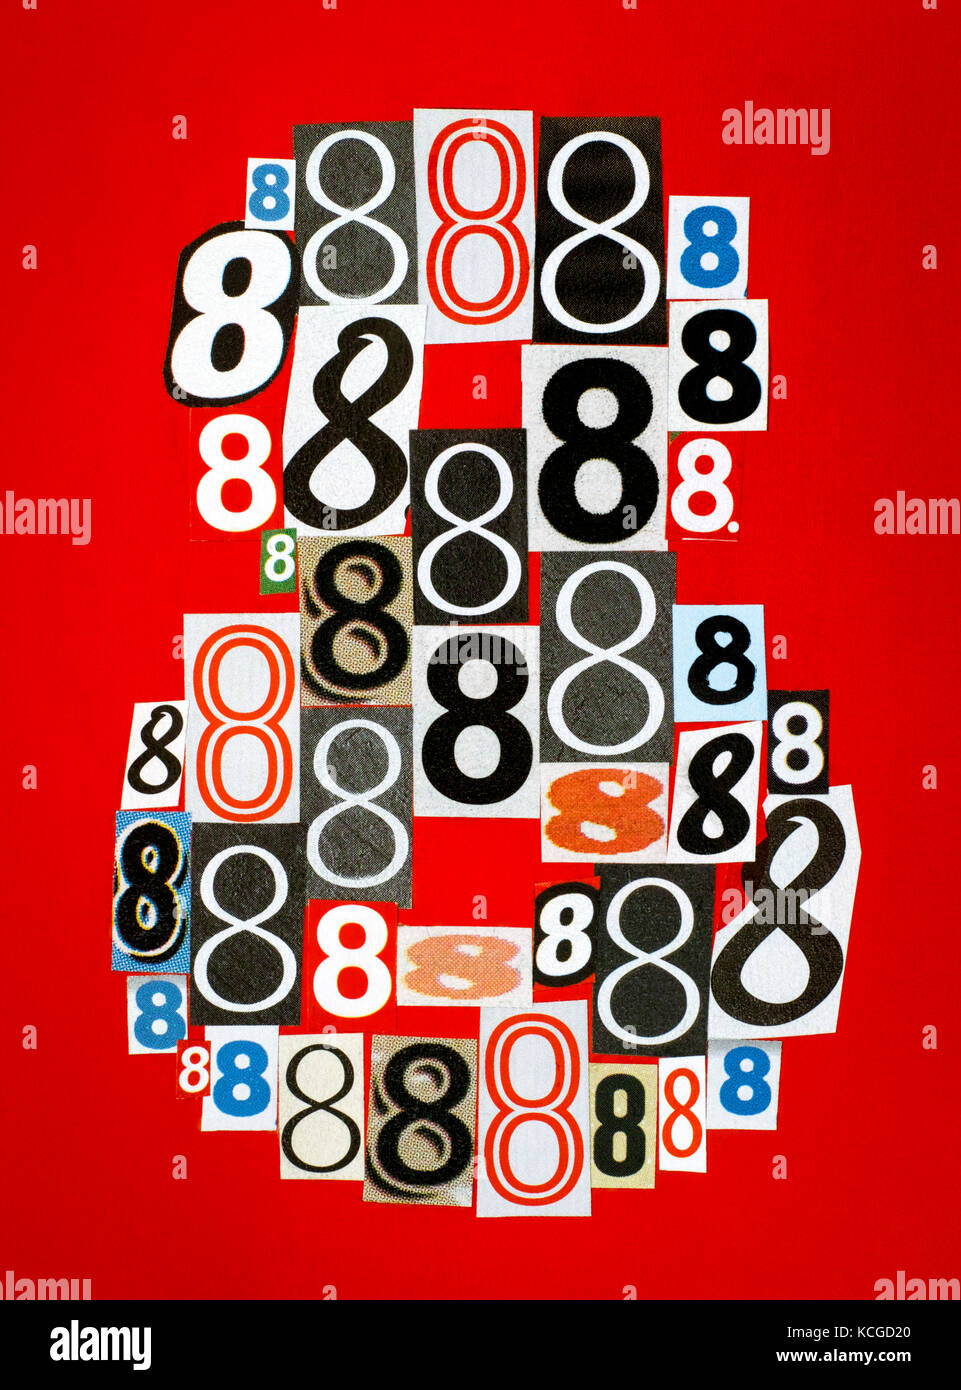 Number Eight made from numbers cutting from magazines on red background. Close-up. Stock Photo